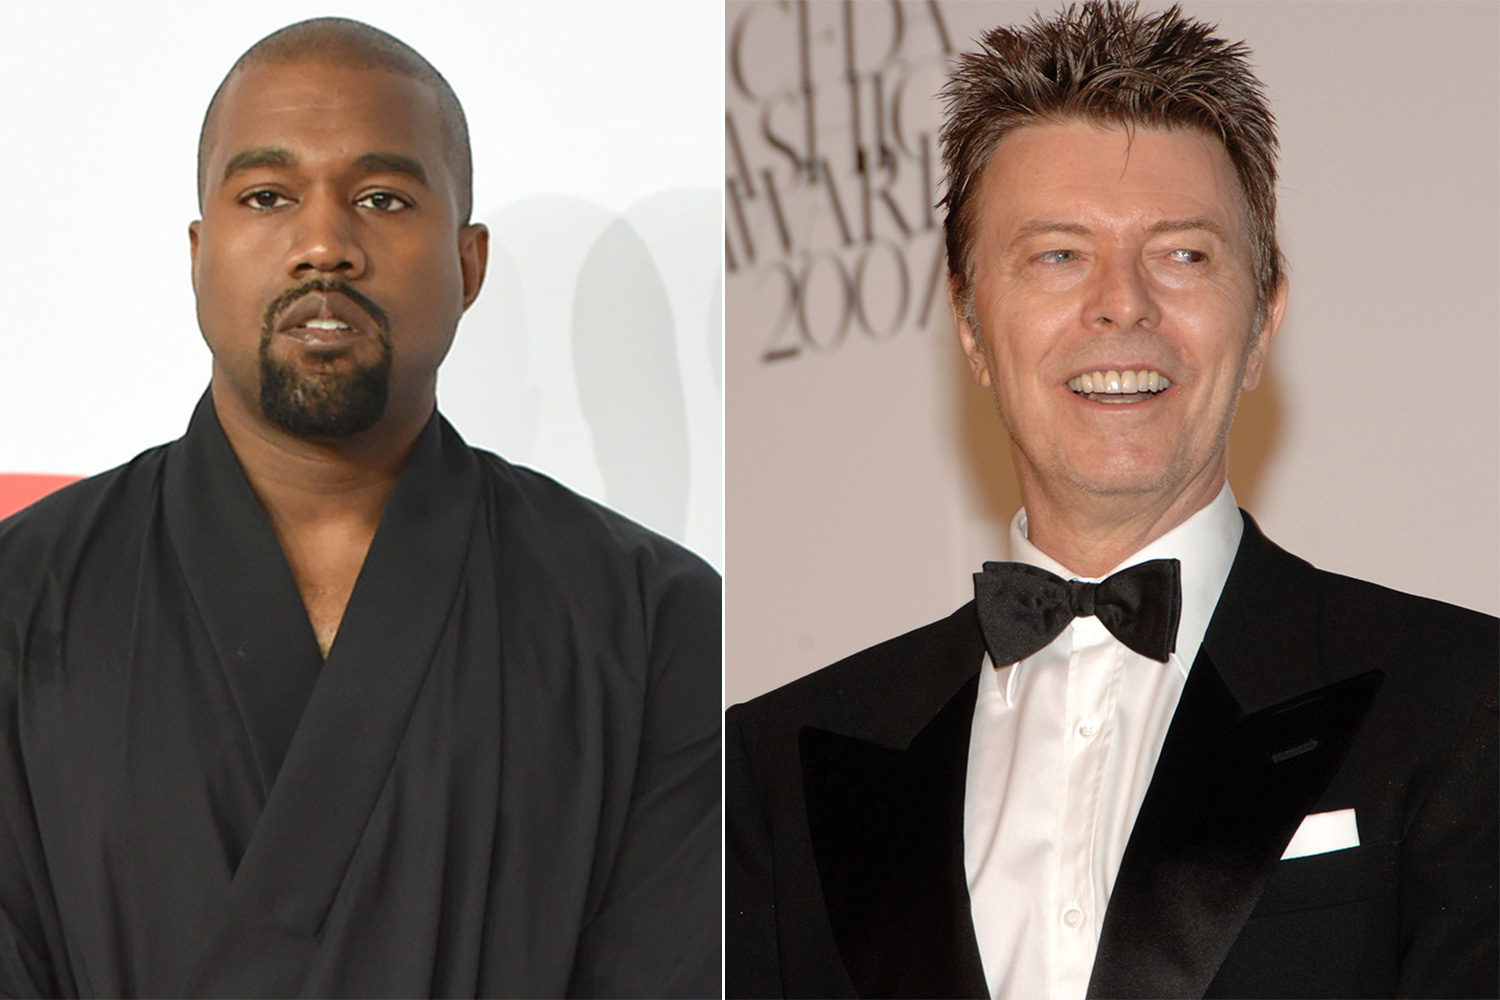 Is Kanye West producing a David Bowie tribute album?